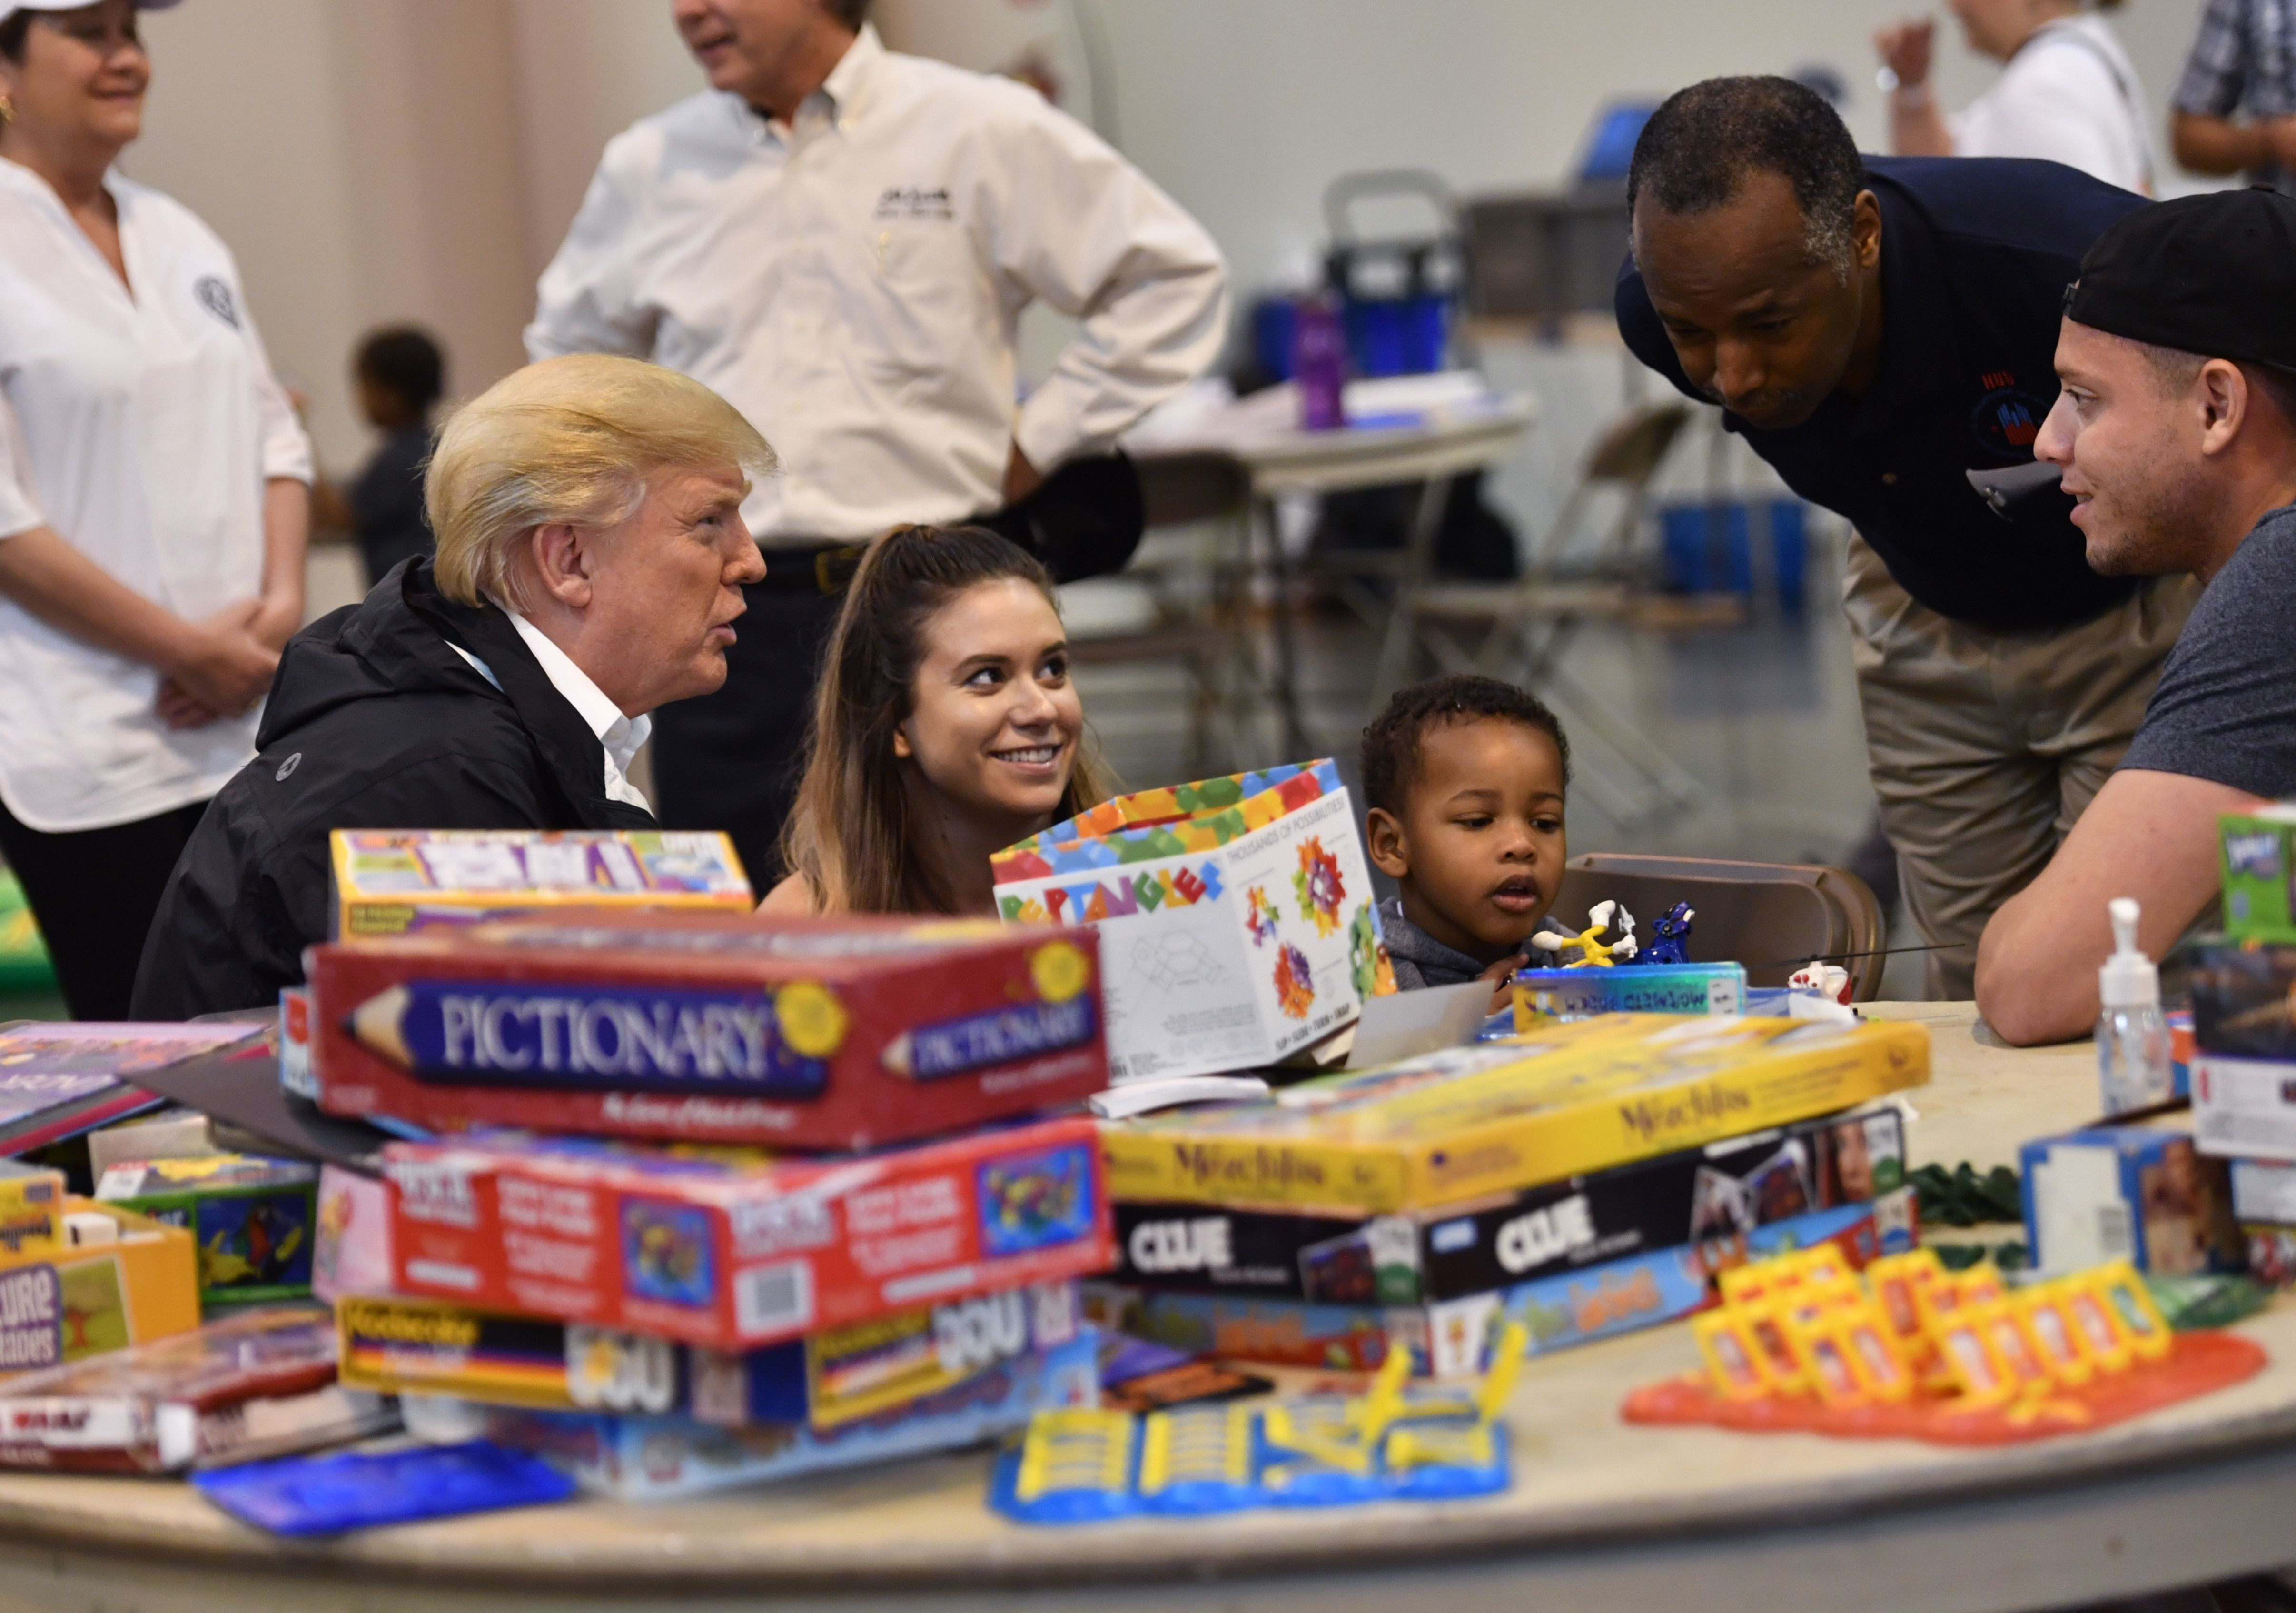 US President Donald Trump, with Secretary of Housing and Urban Development Ben Carson (2nd R), visits Hurricane Harvey victims at NRG Center in Houston on September 2, 2017. US President Donald Trump, with visits Hurricane Harvey victims at NRG Center in Houston on September 2, 2017. NICHOLAS KAMM/AFP/Getty Images